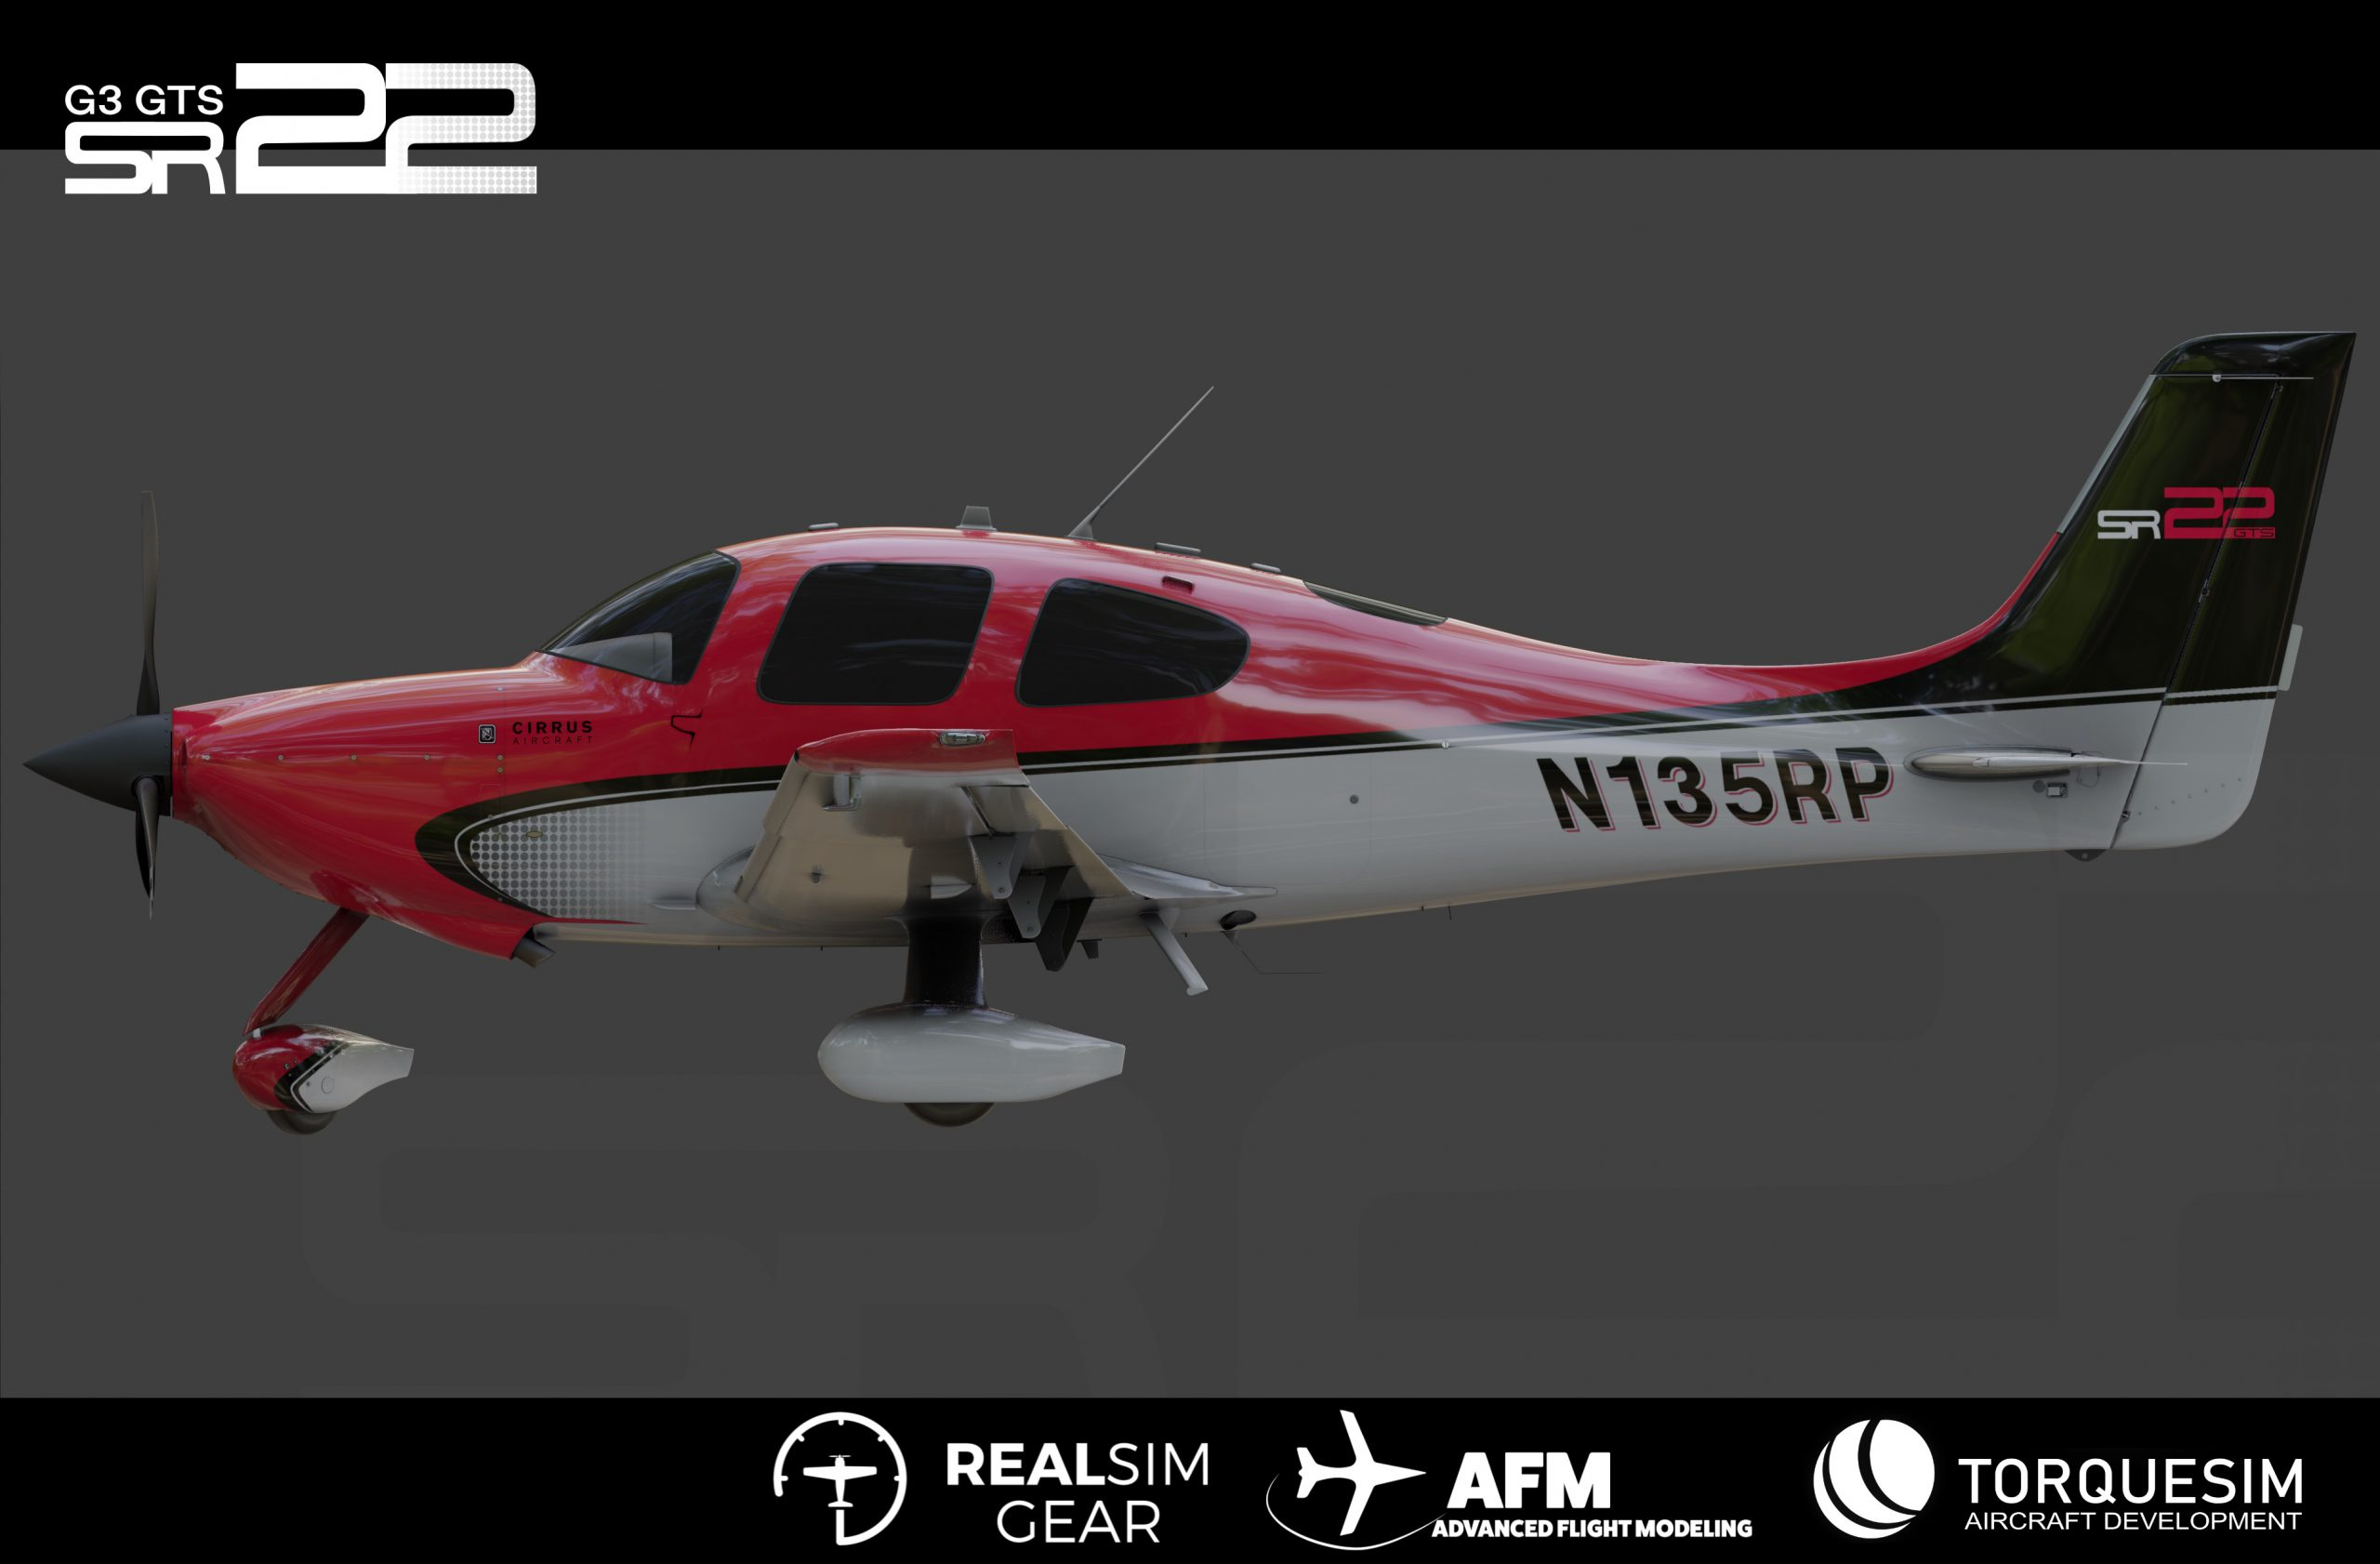 In Development: SR22 G3 GTS